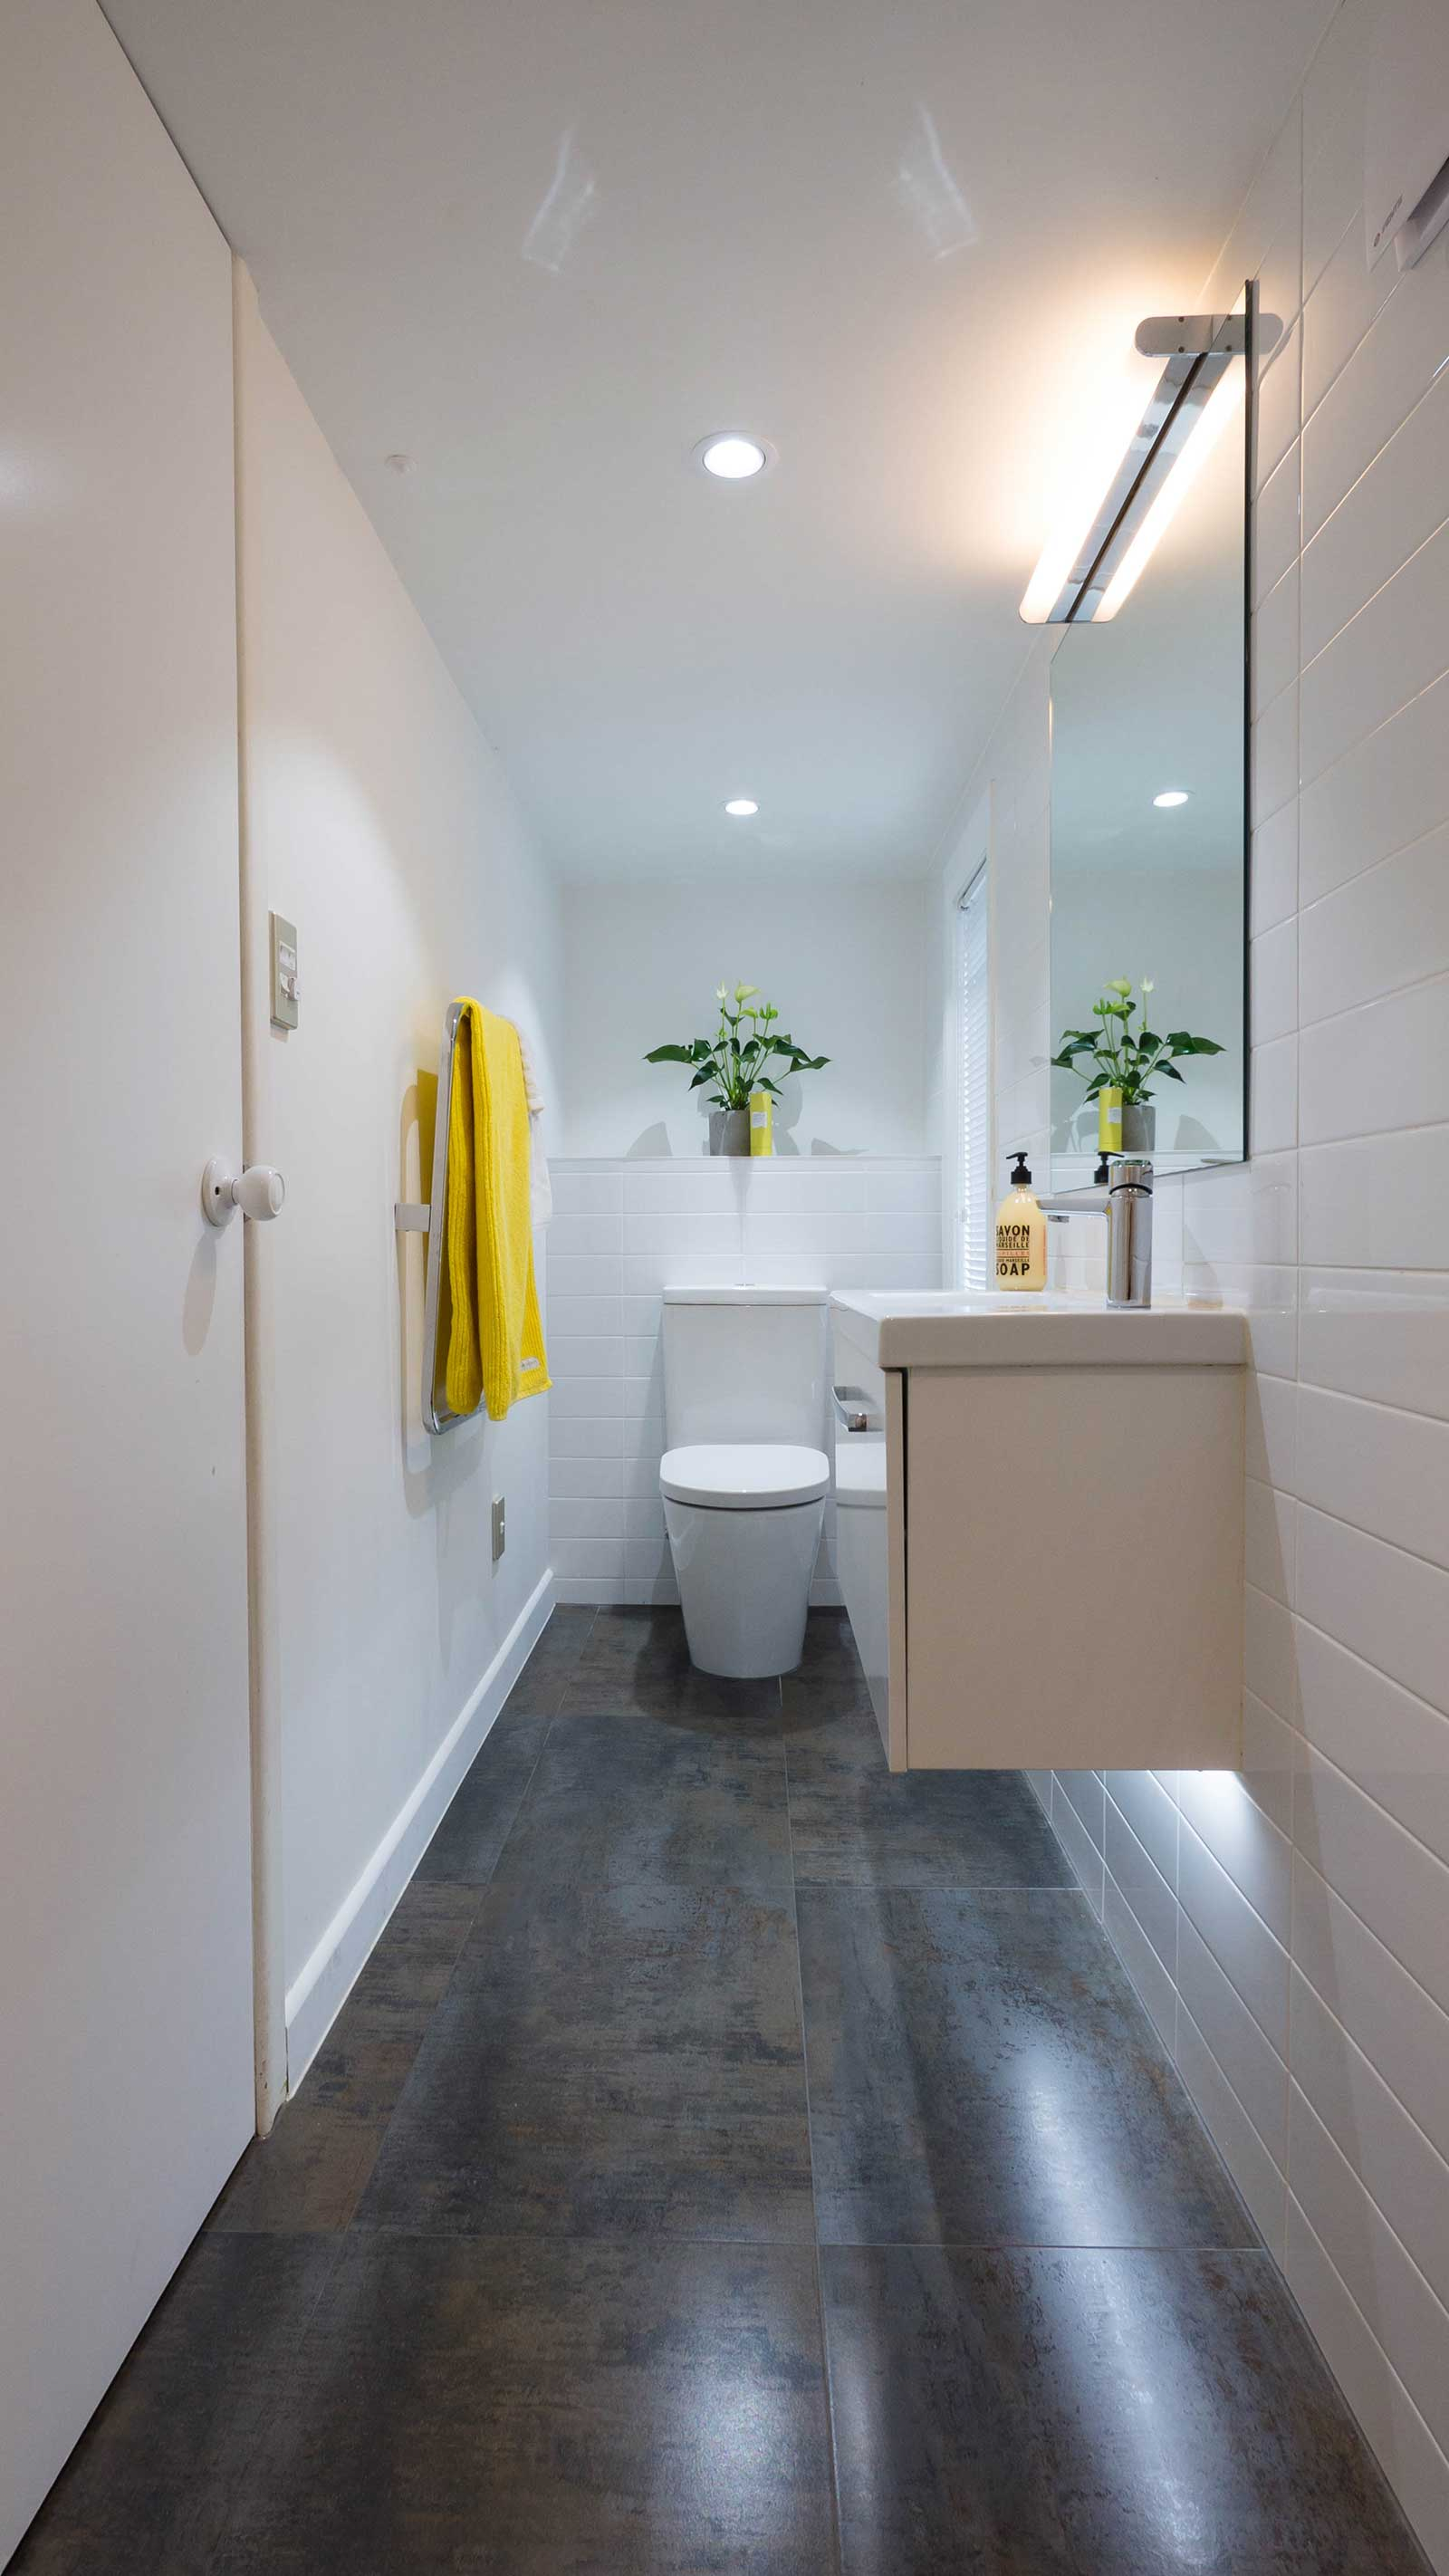 Bathroom Design Auckland bathroom design | angela parlane interior design | auckland